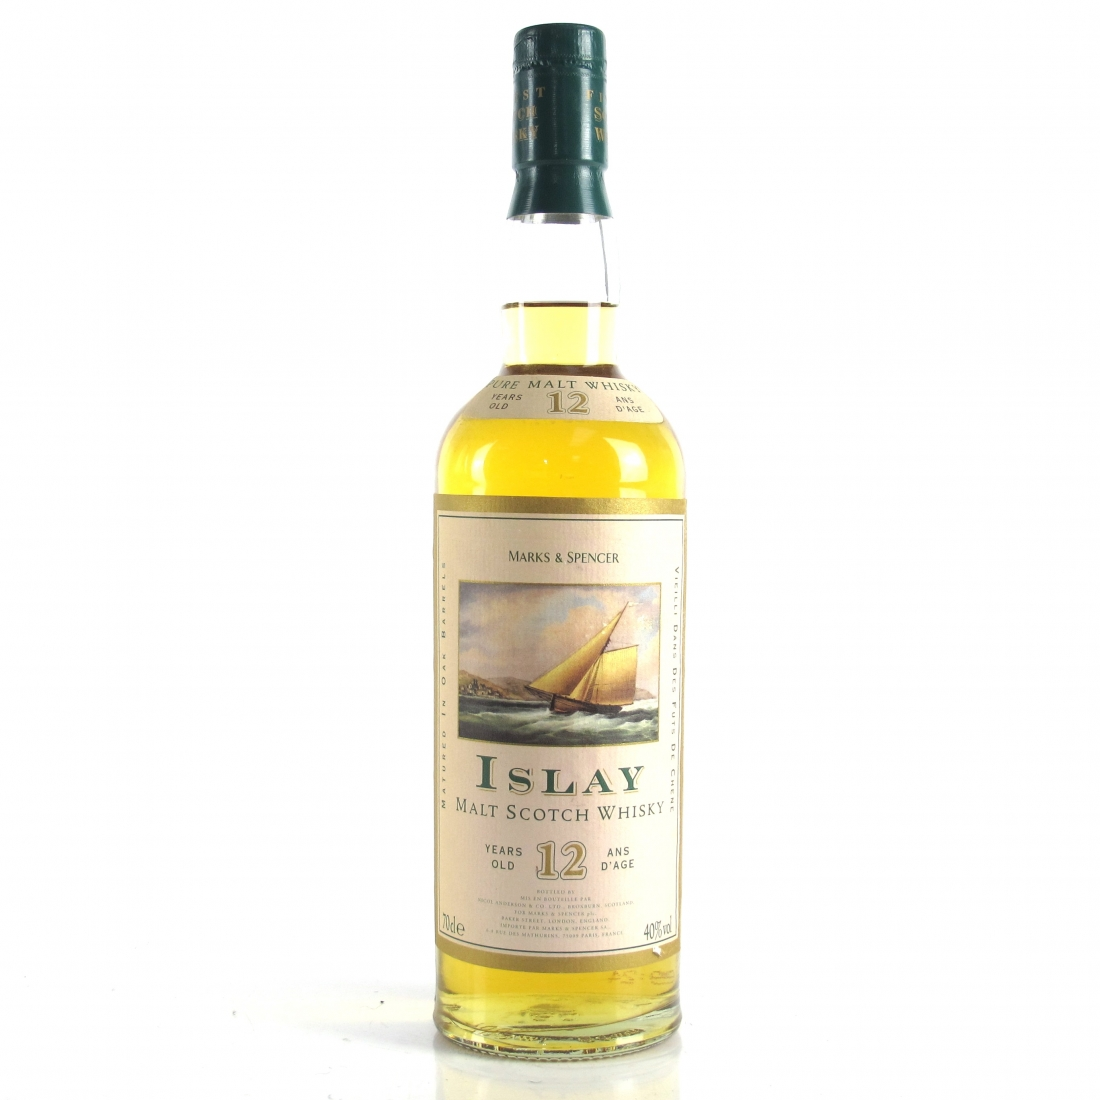 Marks and Spencer Islay 12 Year Old Pure Malt